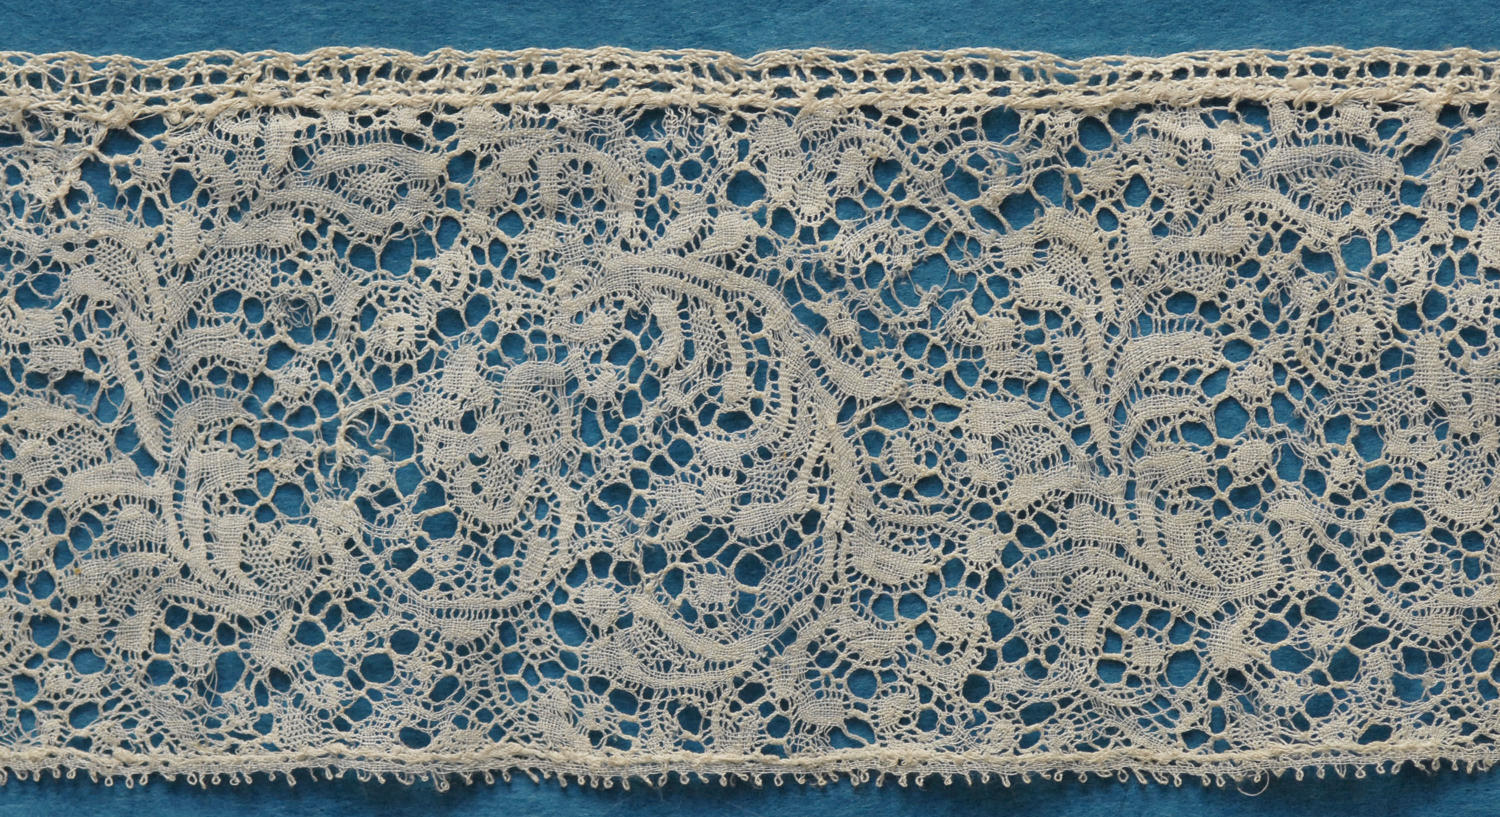 18th Century Binche Bobbin Lace Border